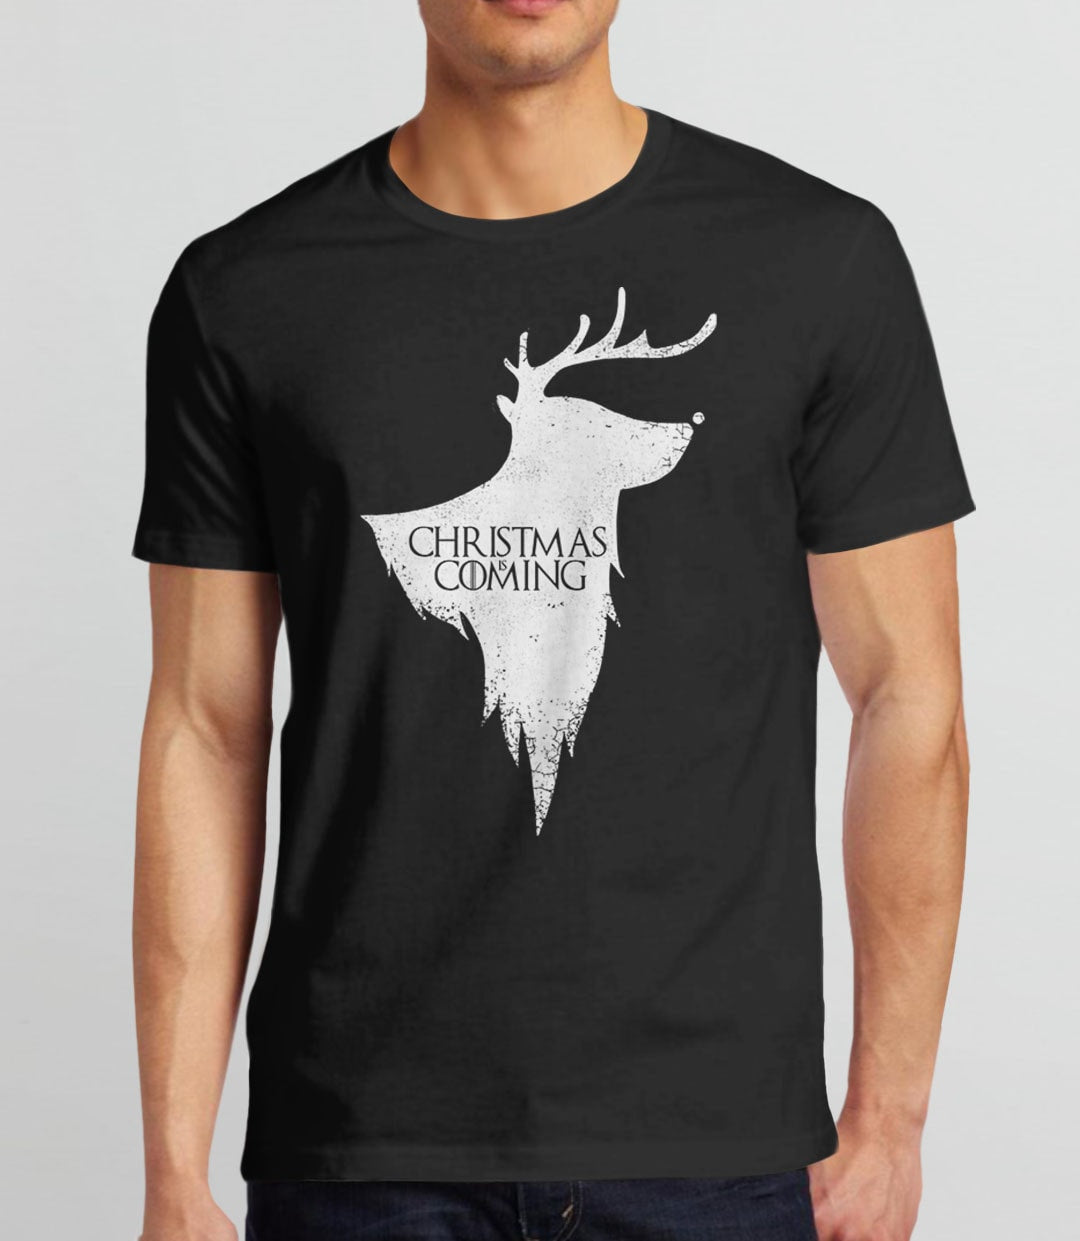 Christmas is Coming, Black Mens (Unisex) Tee by BootsTees